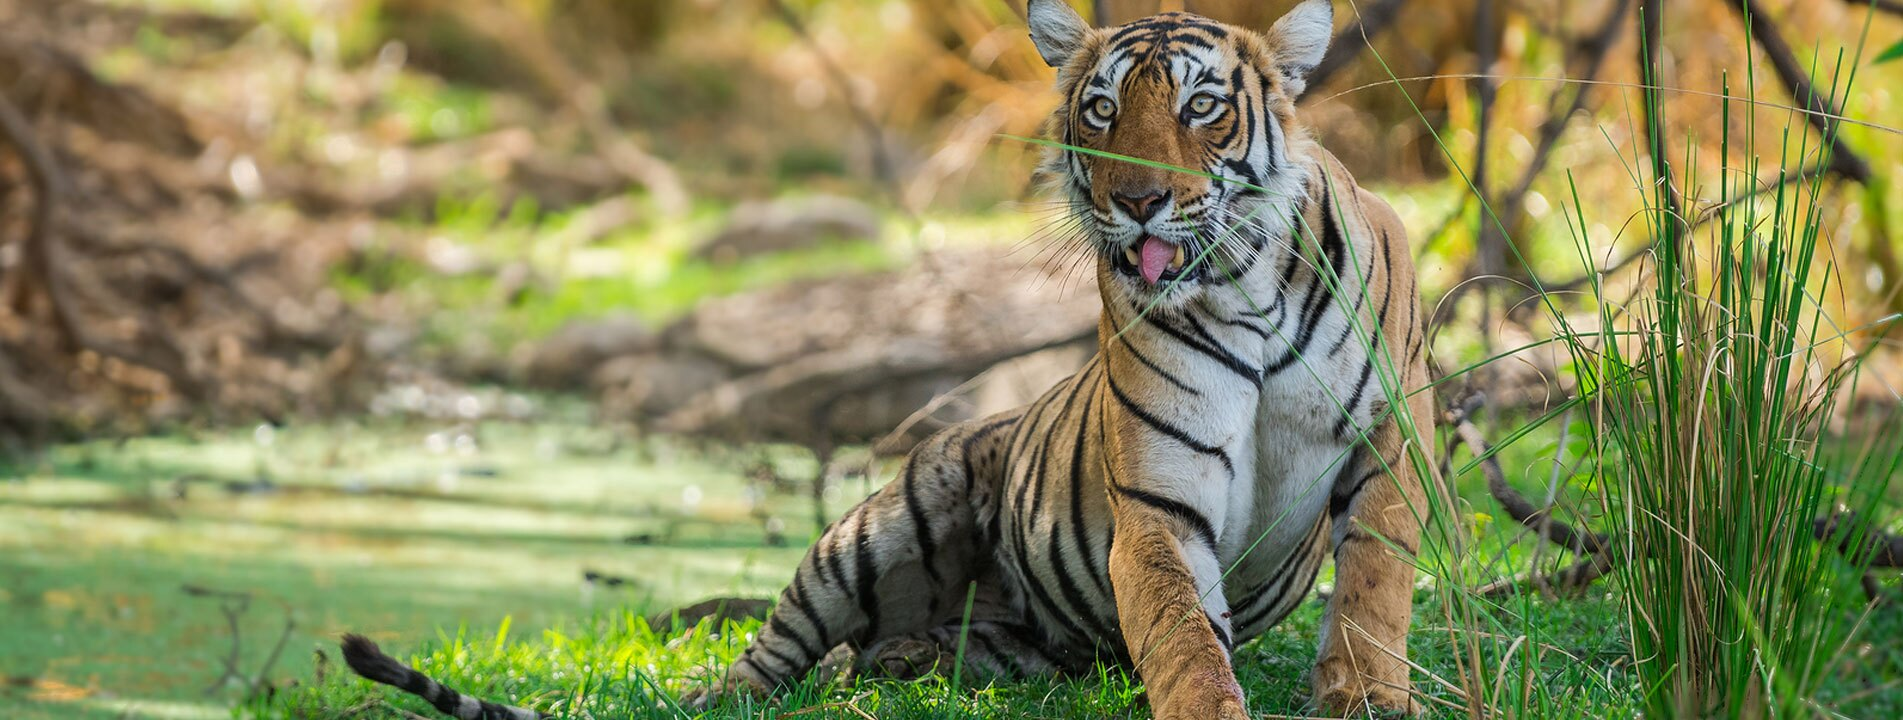 9-Day India Golden Triangle with Tiger Safari